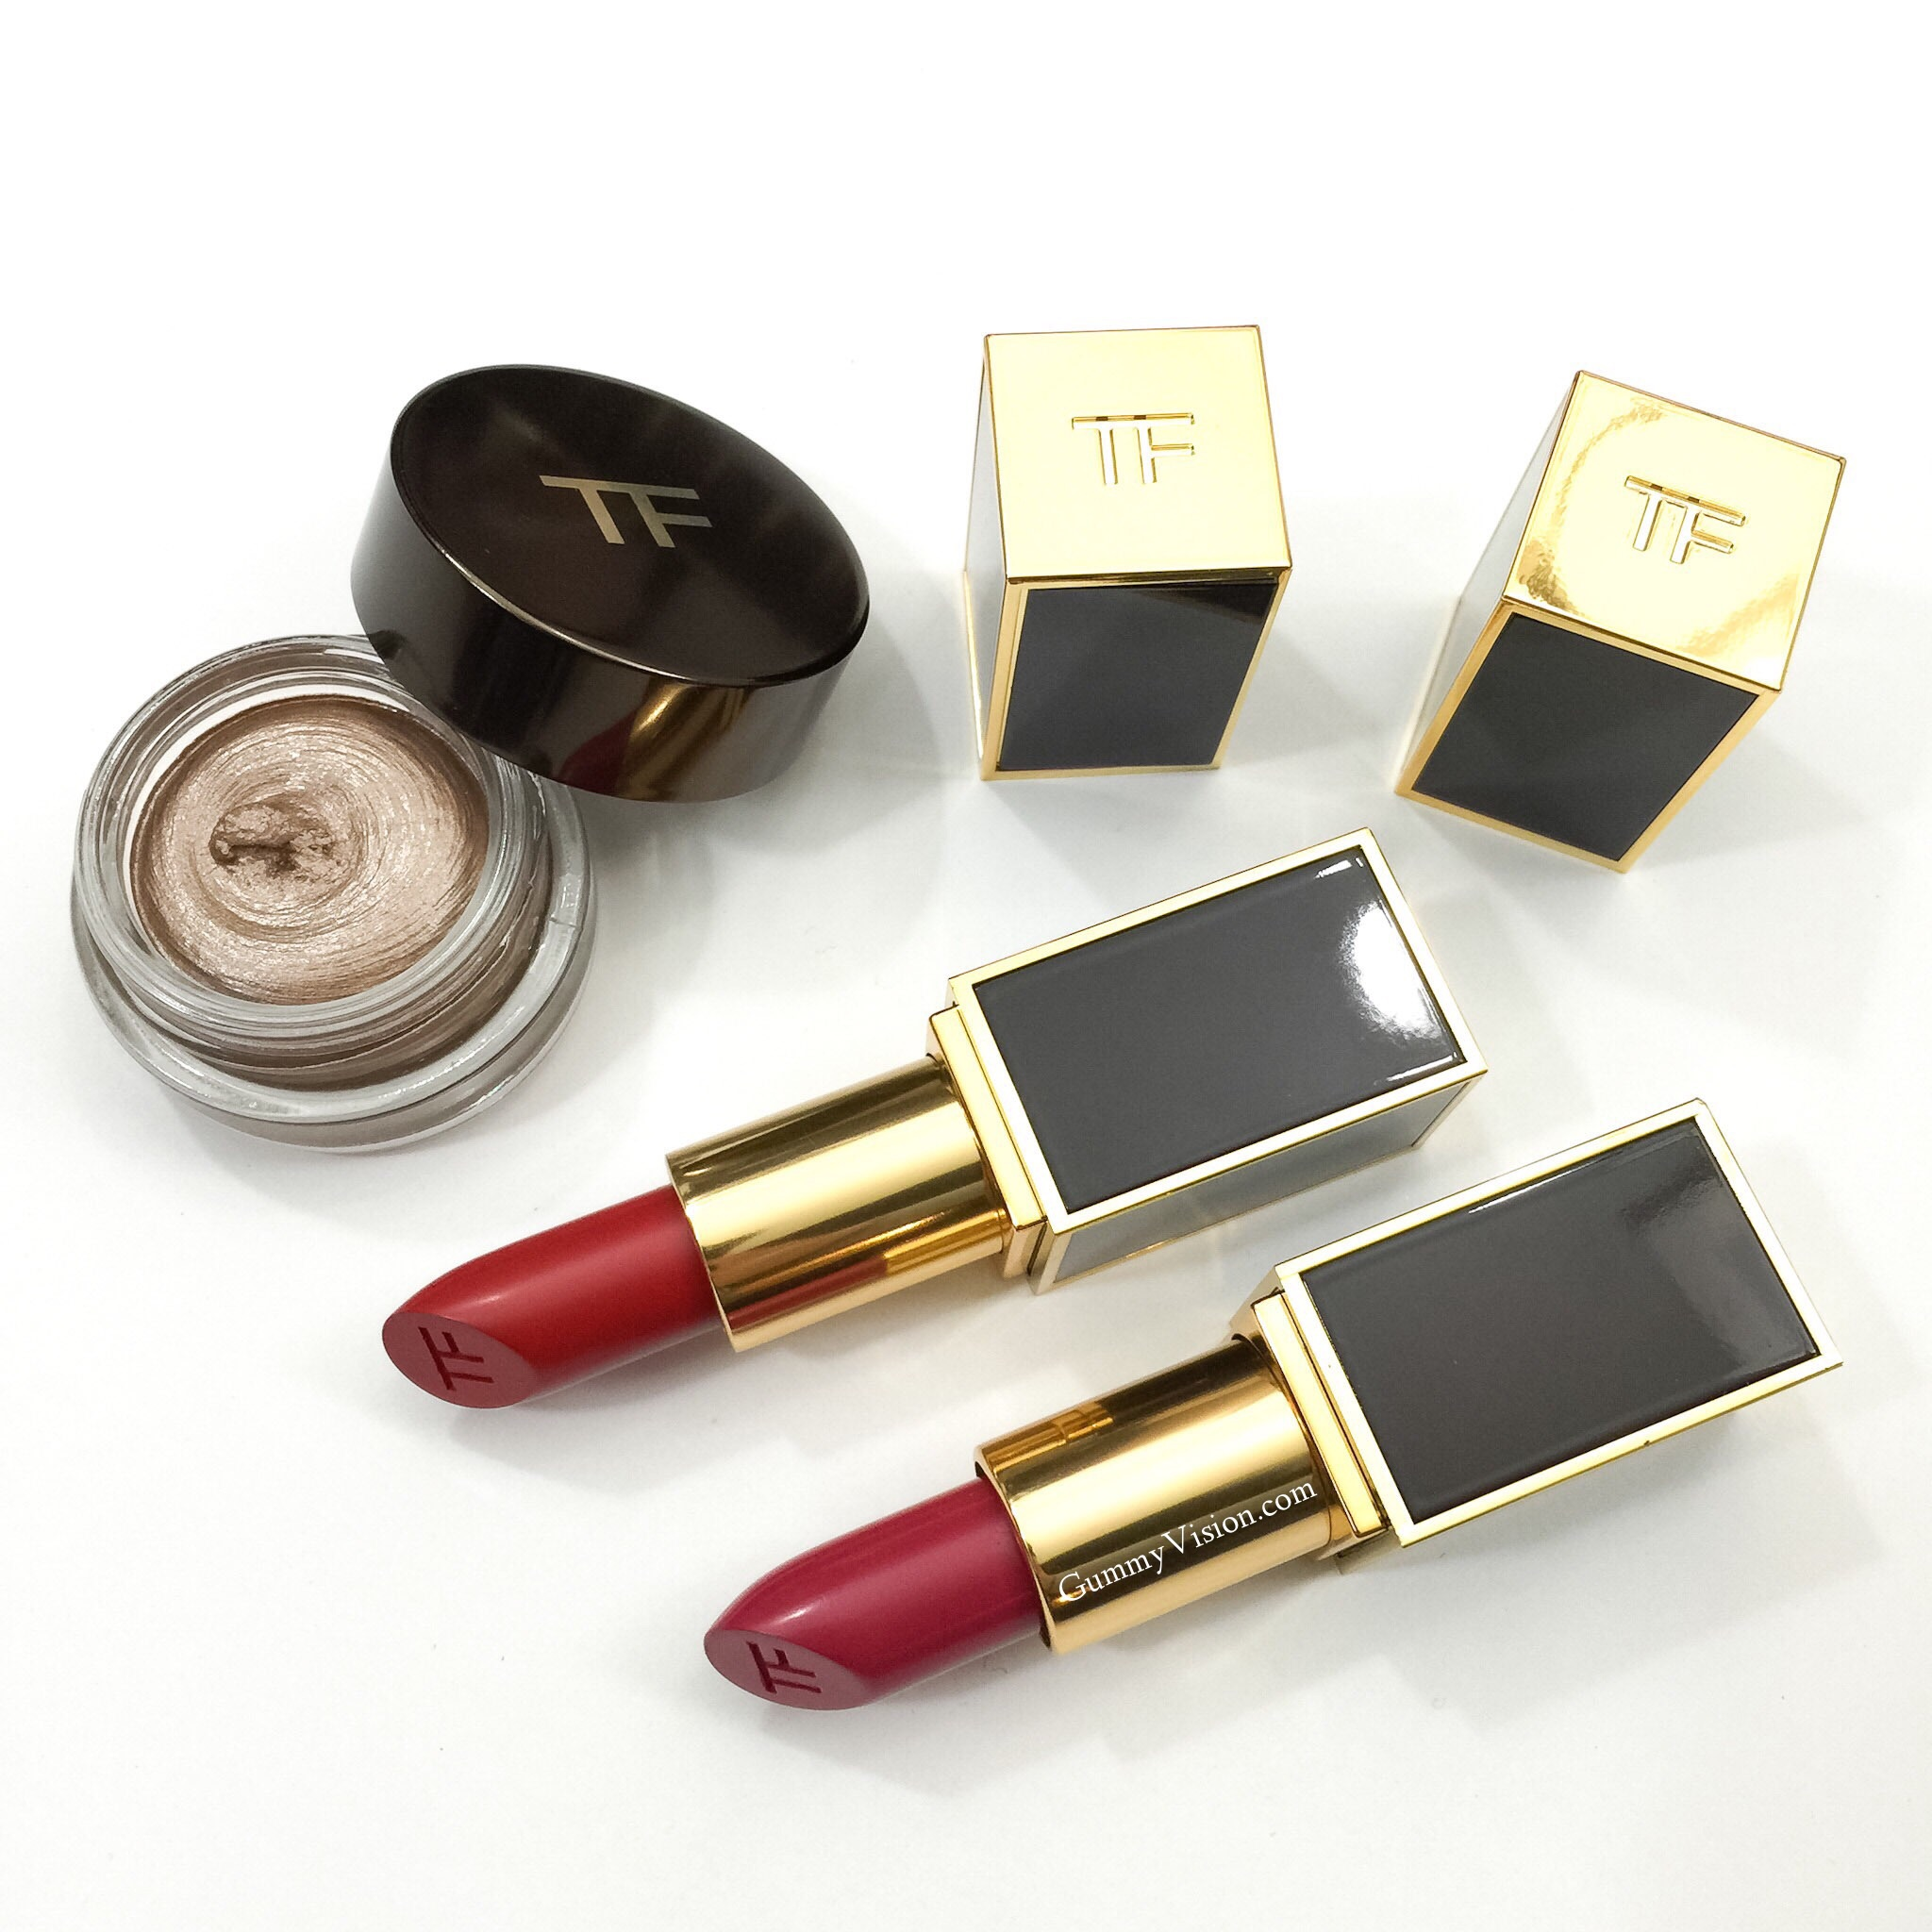 Tom Ford Fall 2014: LE Platinum Cream Color For Eyes, Lip Color Matte in Ruby Rush (top) & Plum Lush - www.gummyvision.com